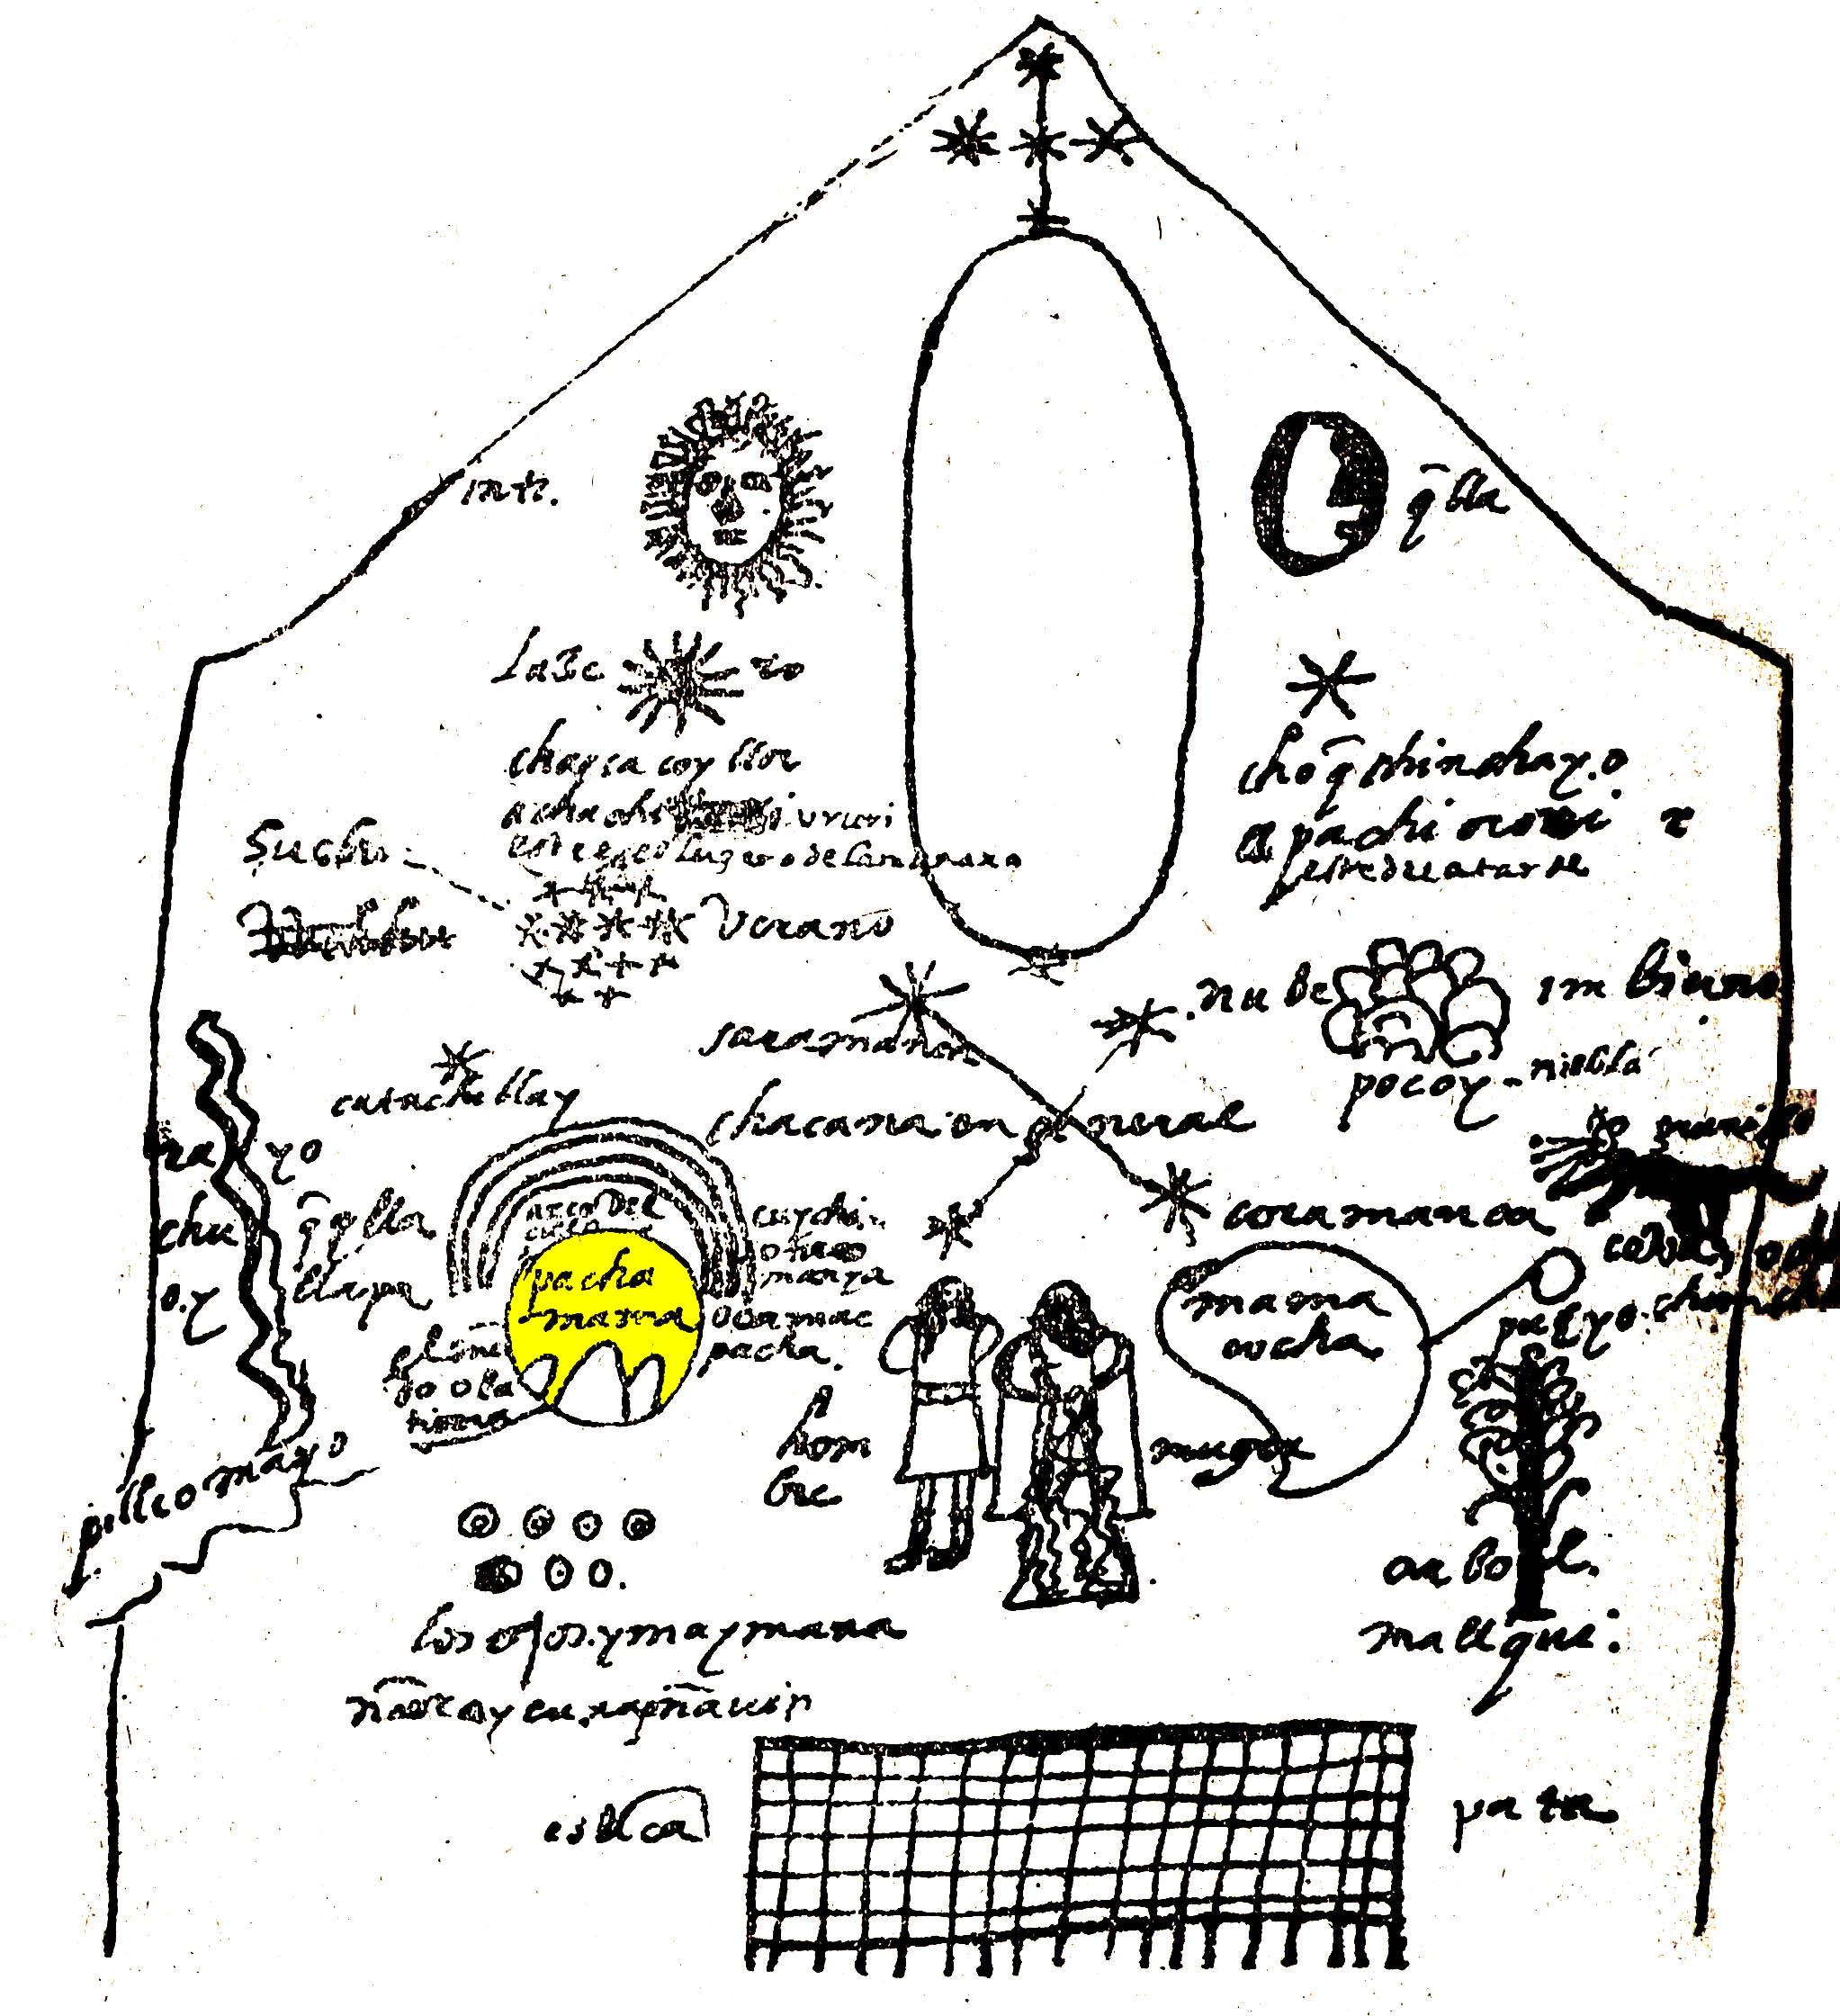 From Wikipedia: Representation of Pachamama in the cosmology, according to Juan de Santa Cruz Pachacuti Yamqui Salcamayhua (1613), after a picture in the Sun Temple Qurikancha in Cusco